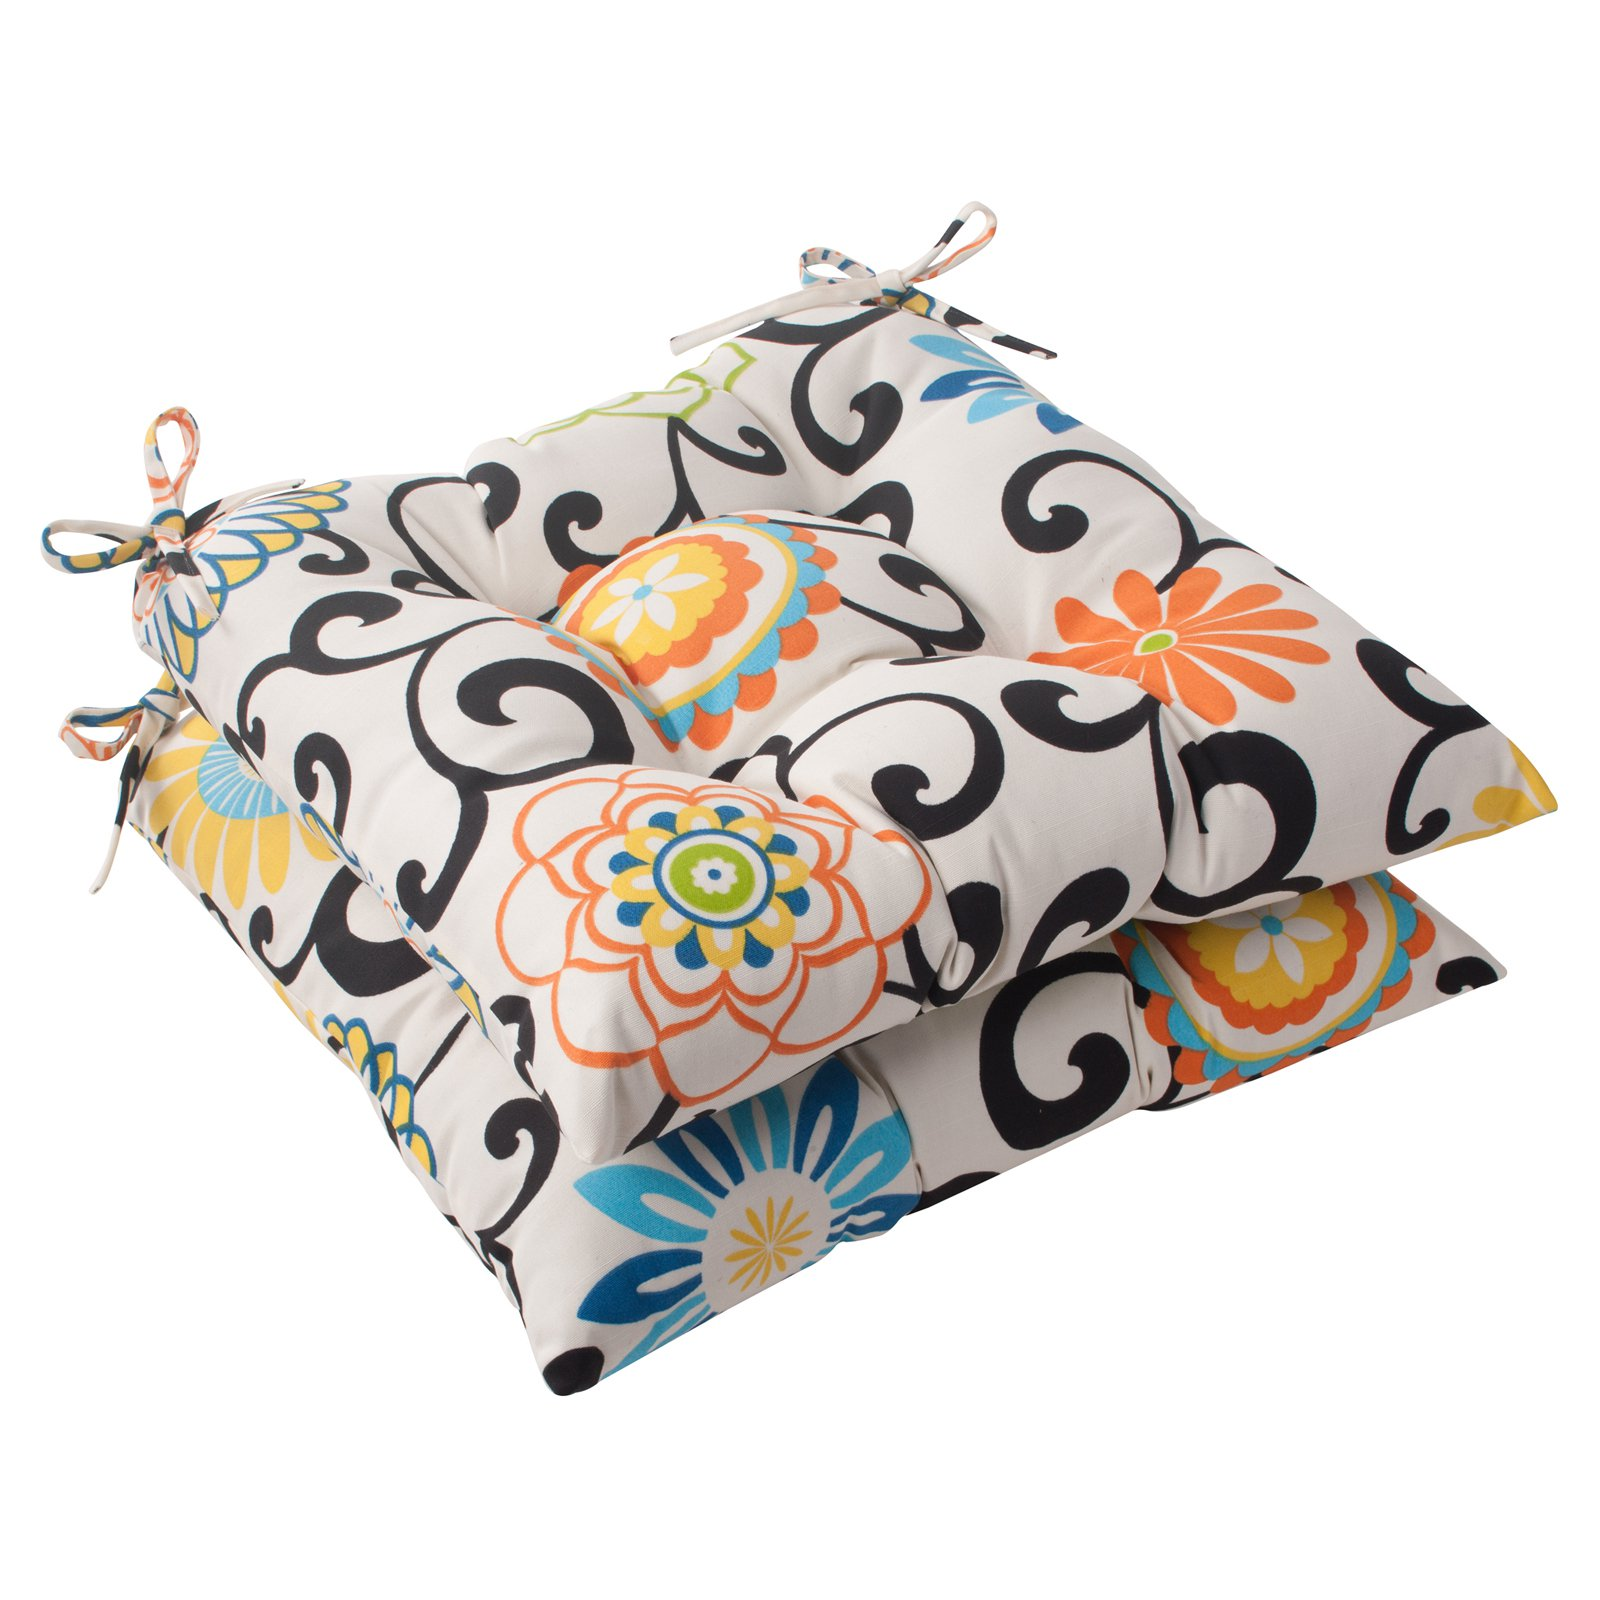 Pillow Perfect Pom Pom Play Wrought Iron Seat Cushion - Set of 2